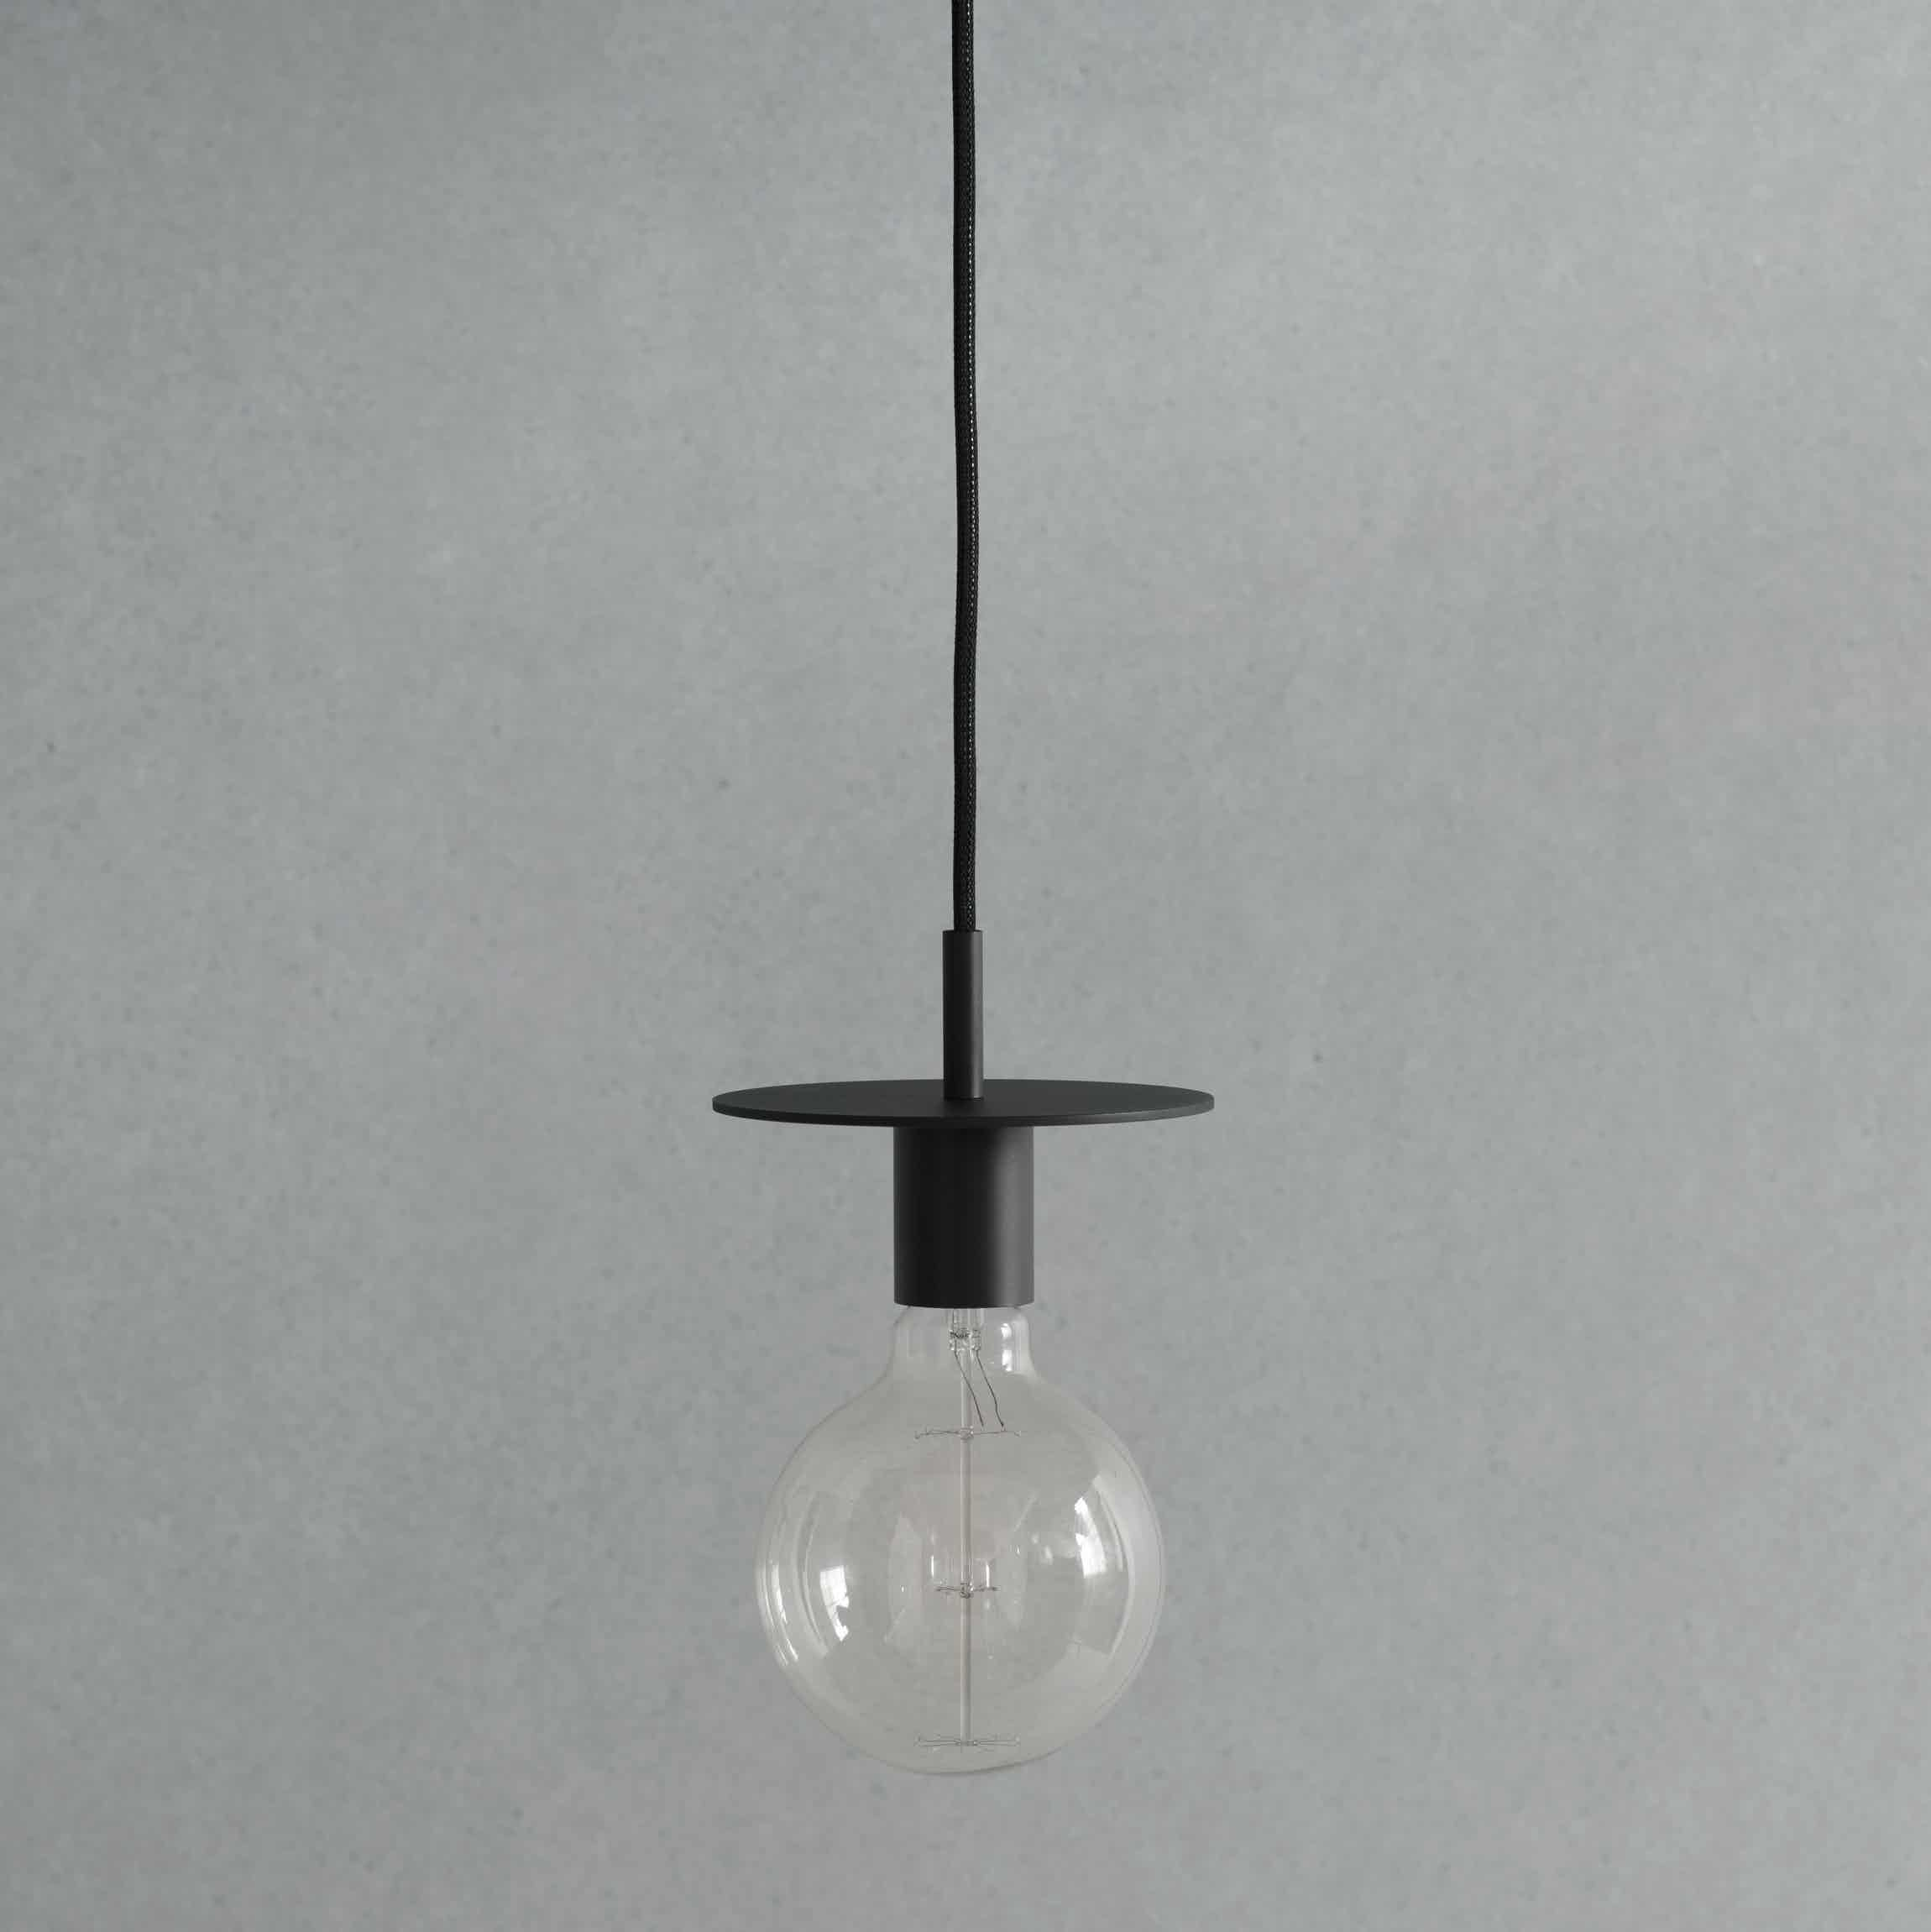 La Lampe Pendant By Friends Founders Now Available At Haute